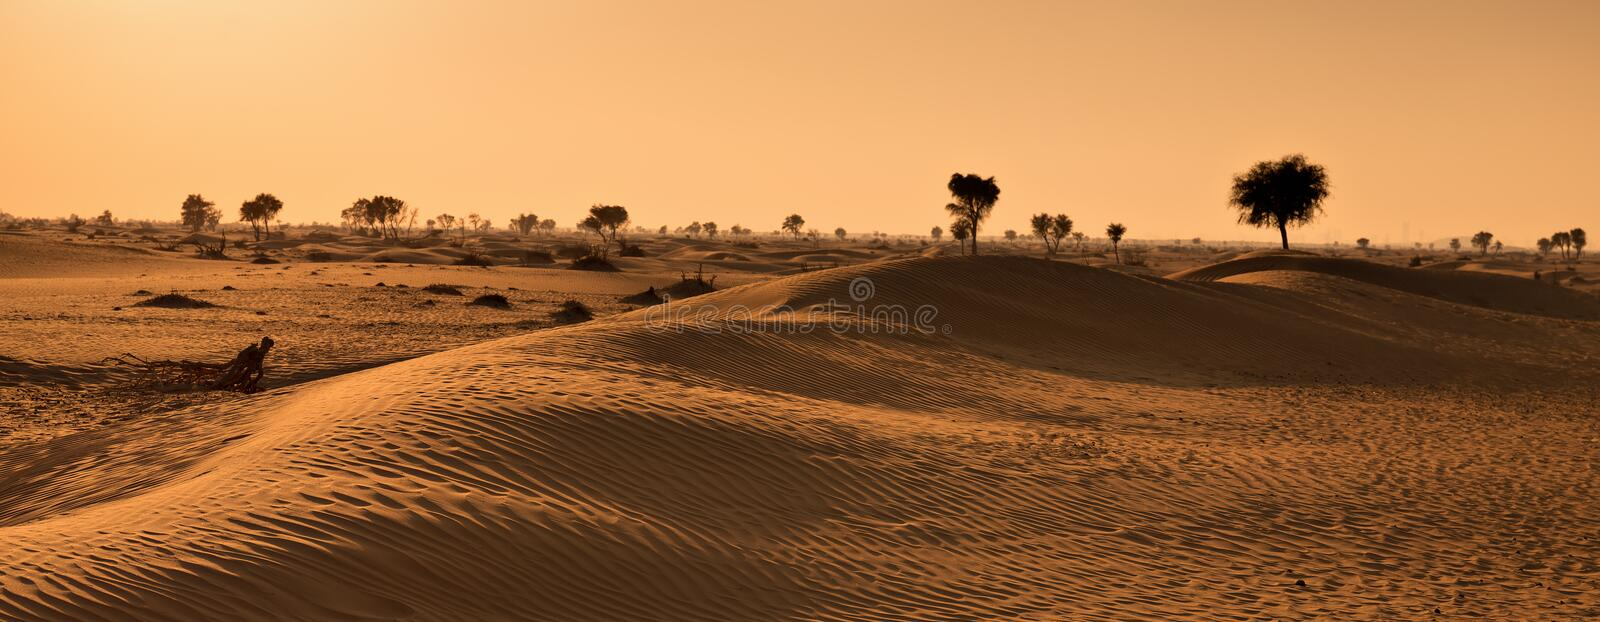 Sunset in the Arabian desert royalty free stock photography